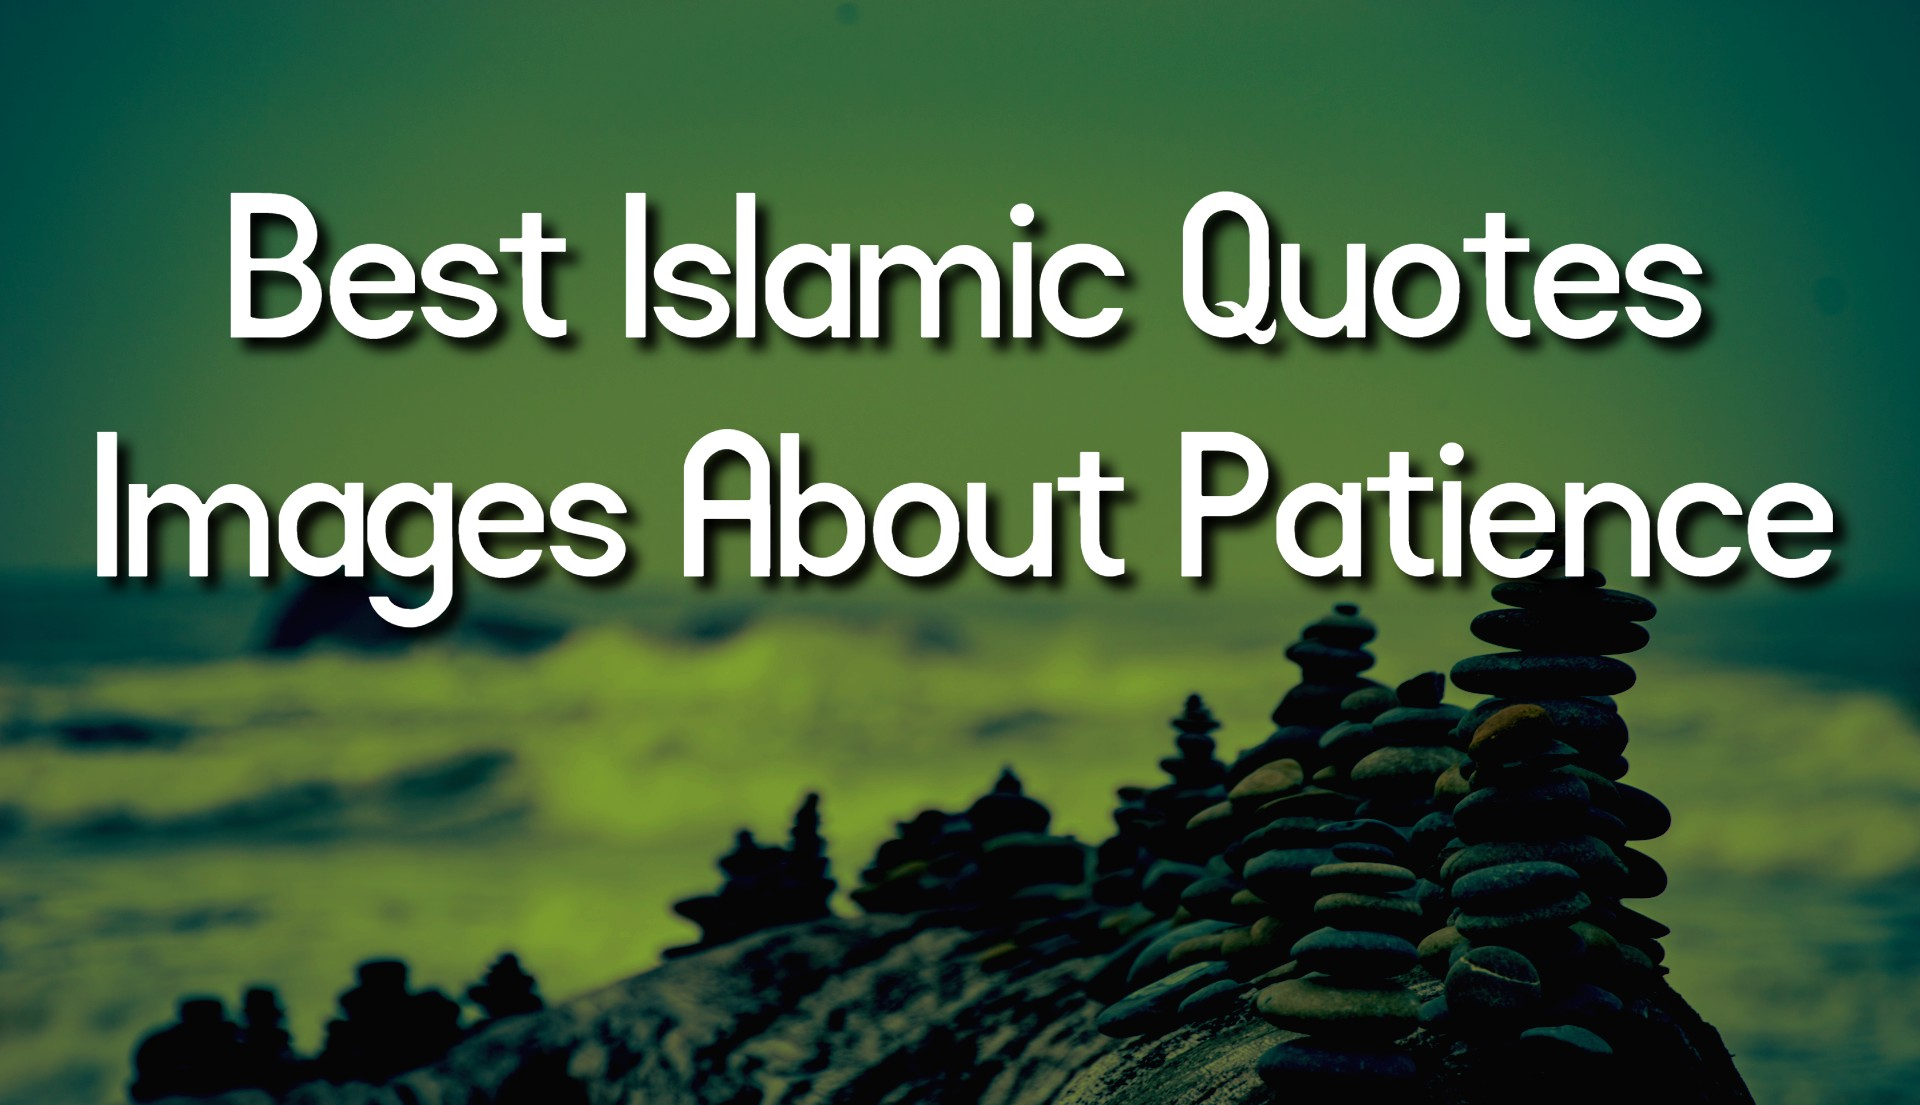 Best Islamic Quotes Images About Patience